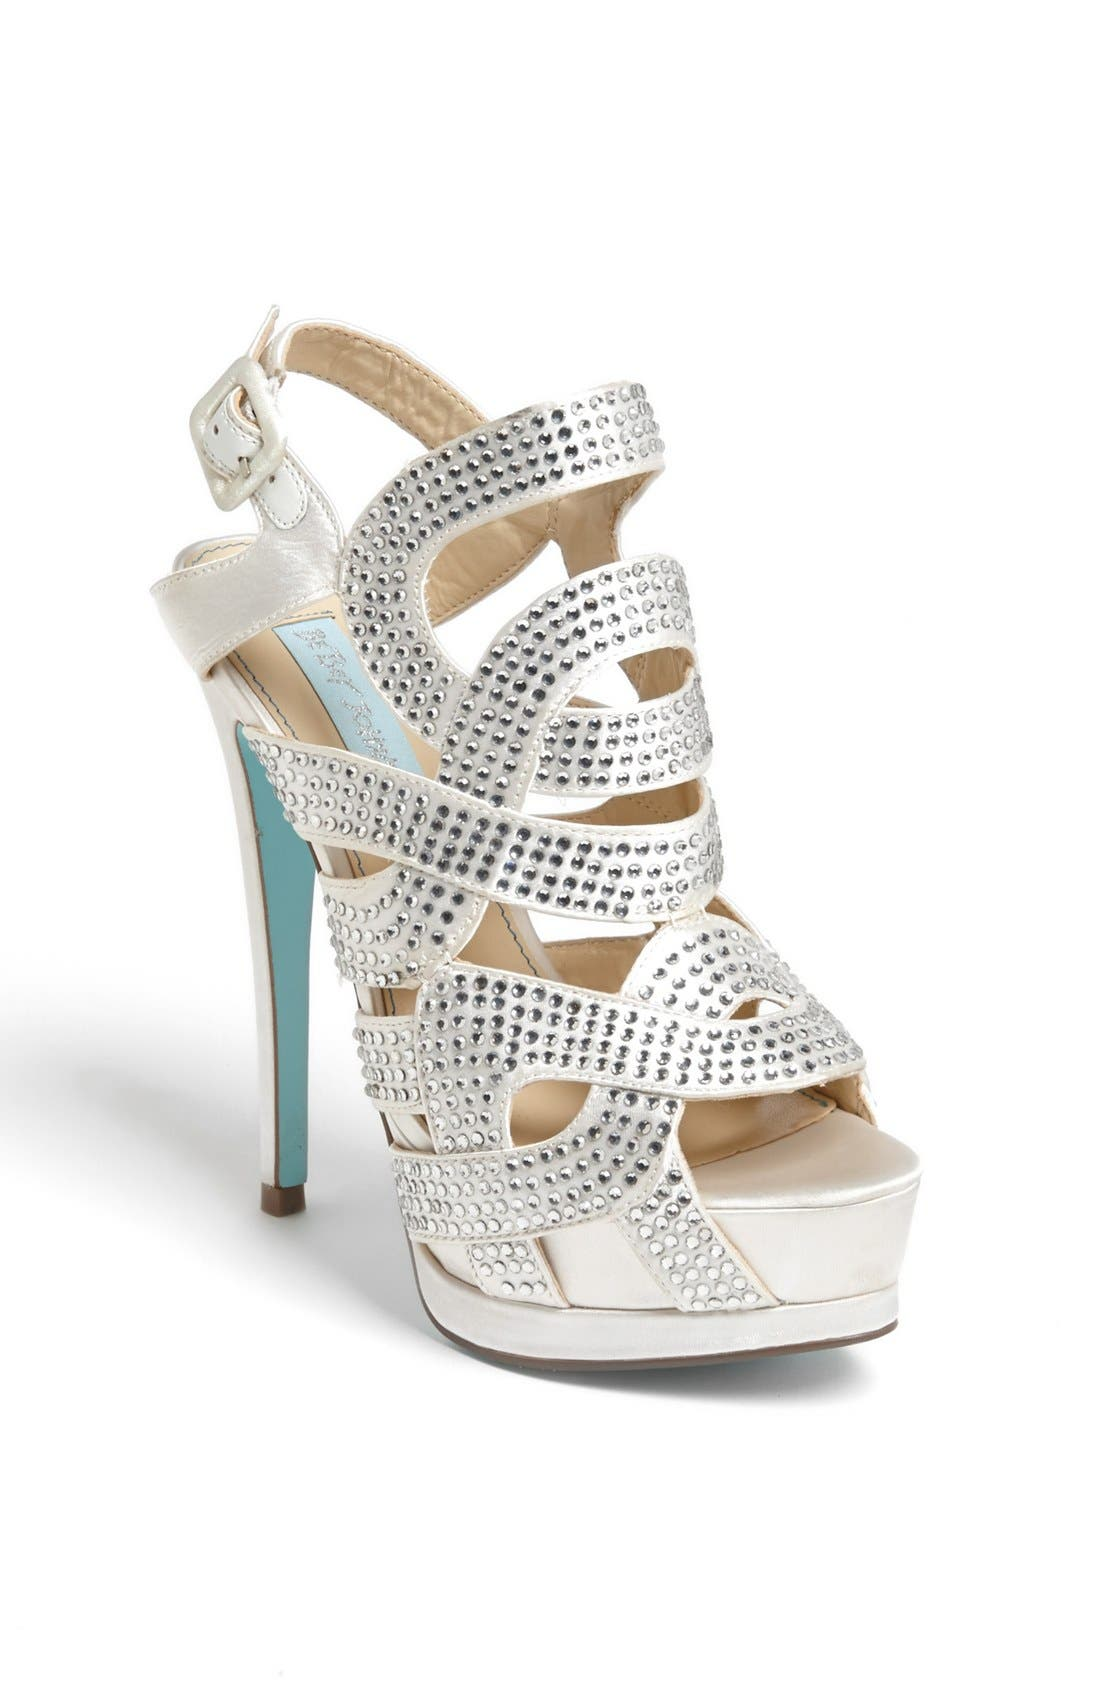 Main Image - Blue by Betsey Johnson 'Love' Sandal